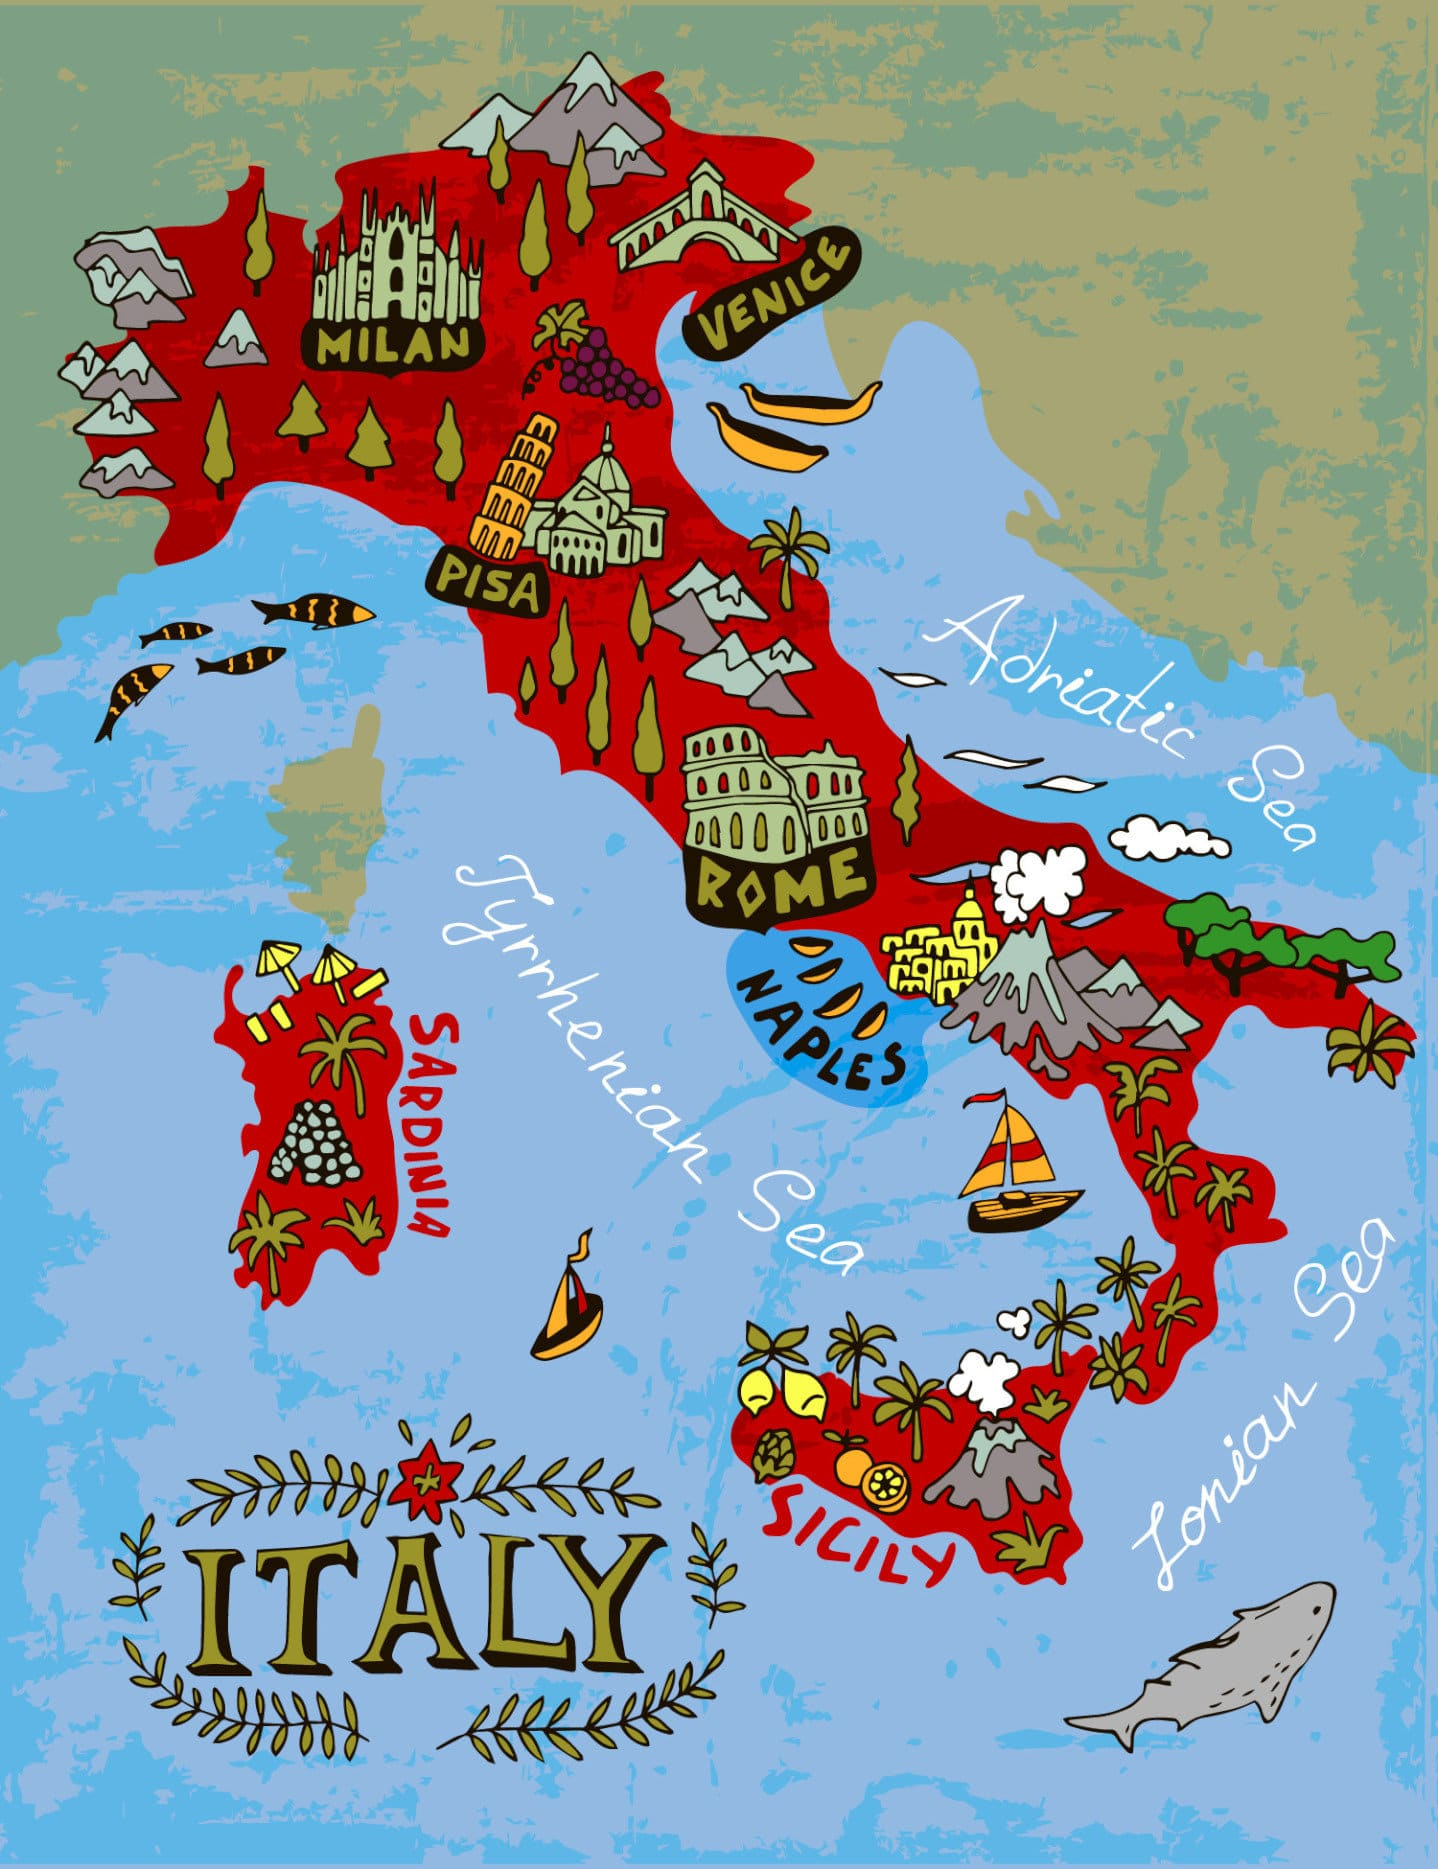 Map Of Italy In Italian.Italian Phrases For Travel Colosseum Rome Tickets